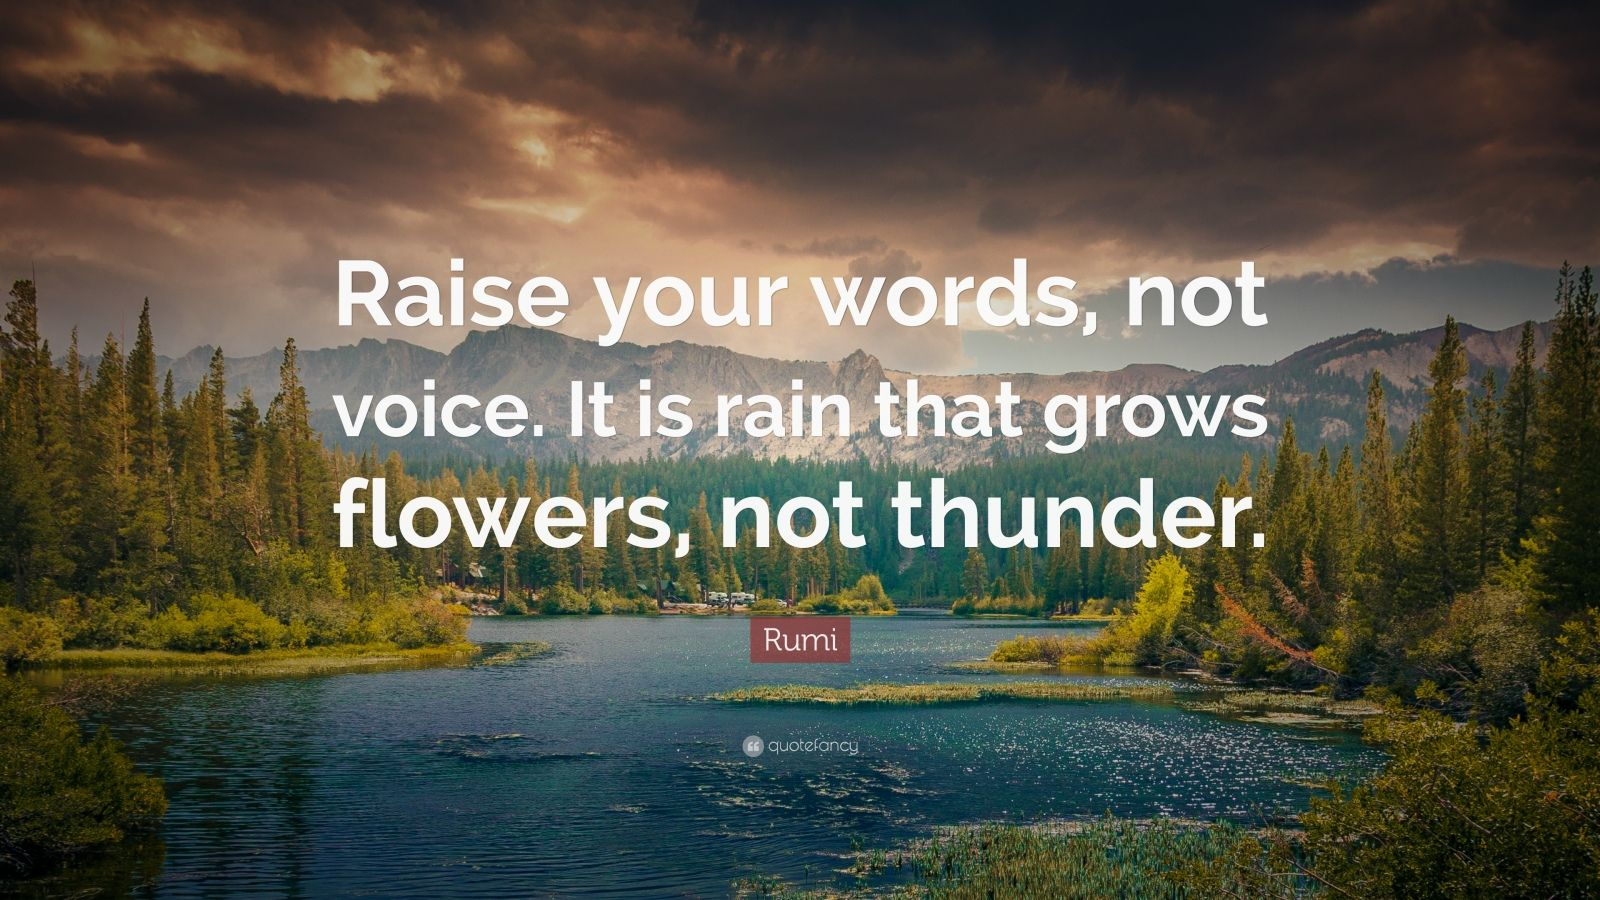 Wallpaper Life Quotes Sayings Rumi Quote Raise Your Words Not Voice It Is Rain That